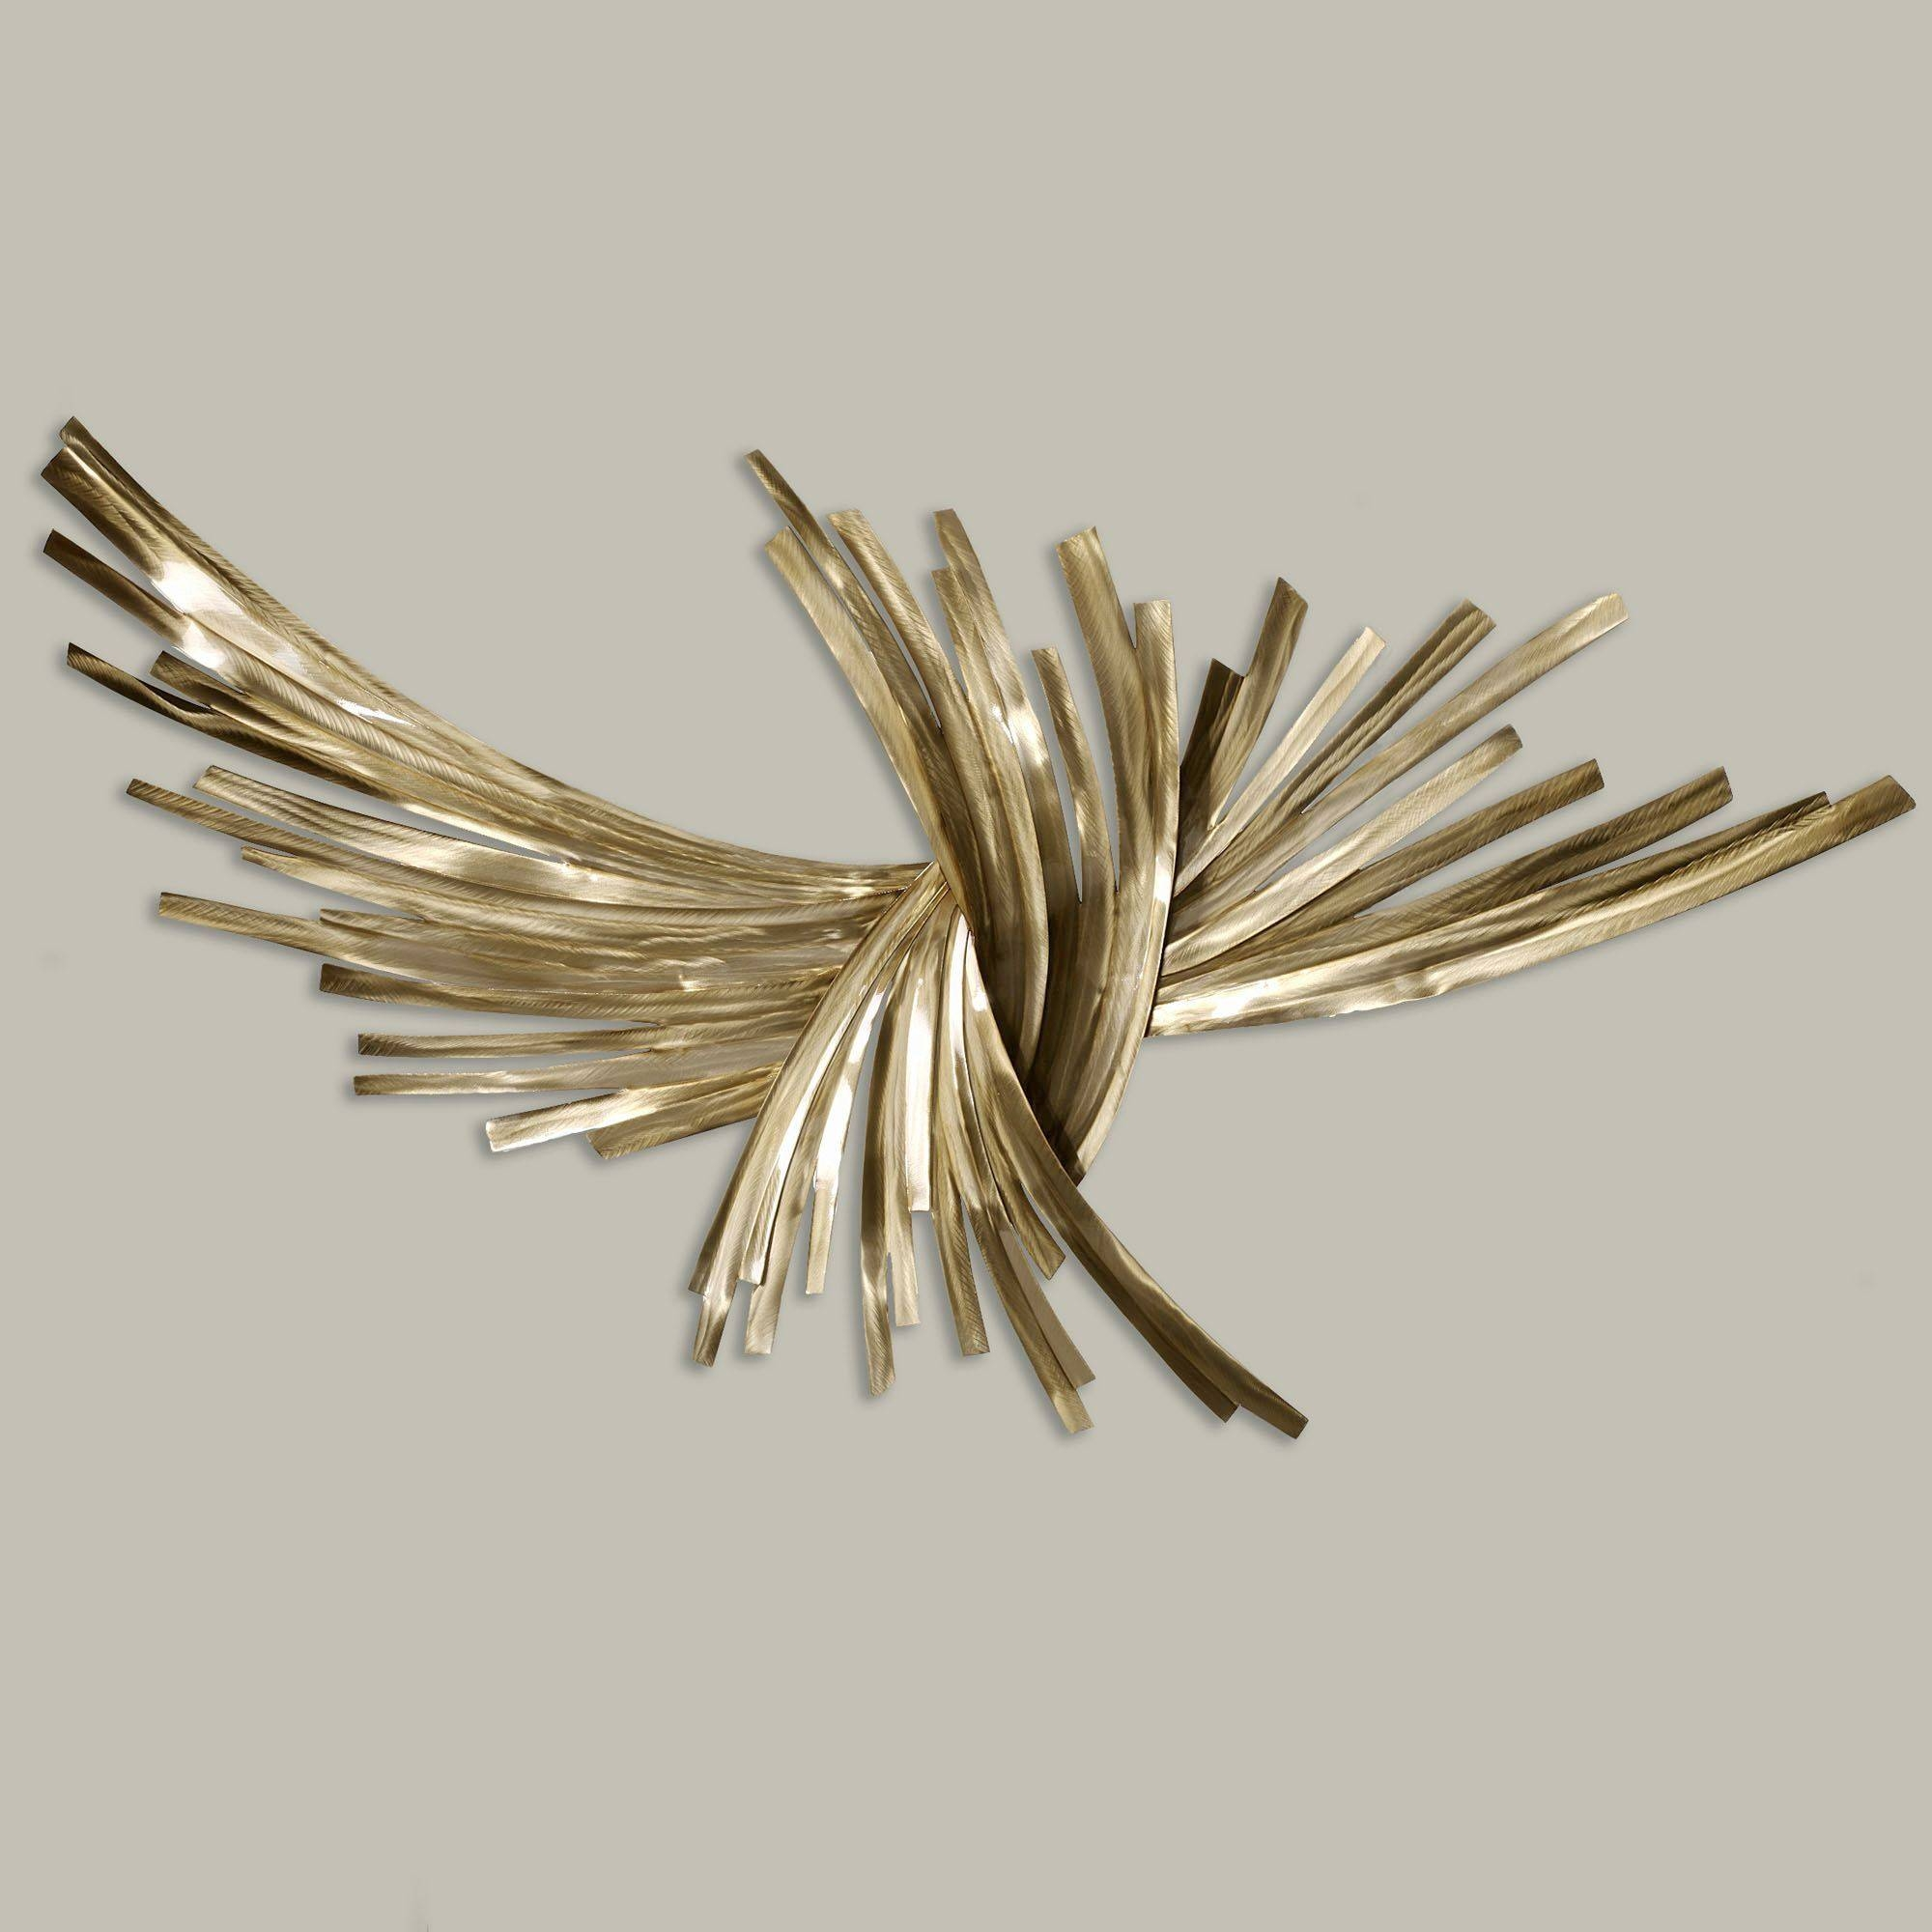 Contemporary Metal Wall Art Sculptures | Touch Of Class With Regard To 2017 Contemporary Metal Wall Art Sculpture (View 3 of 20)